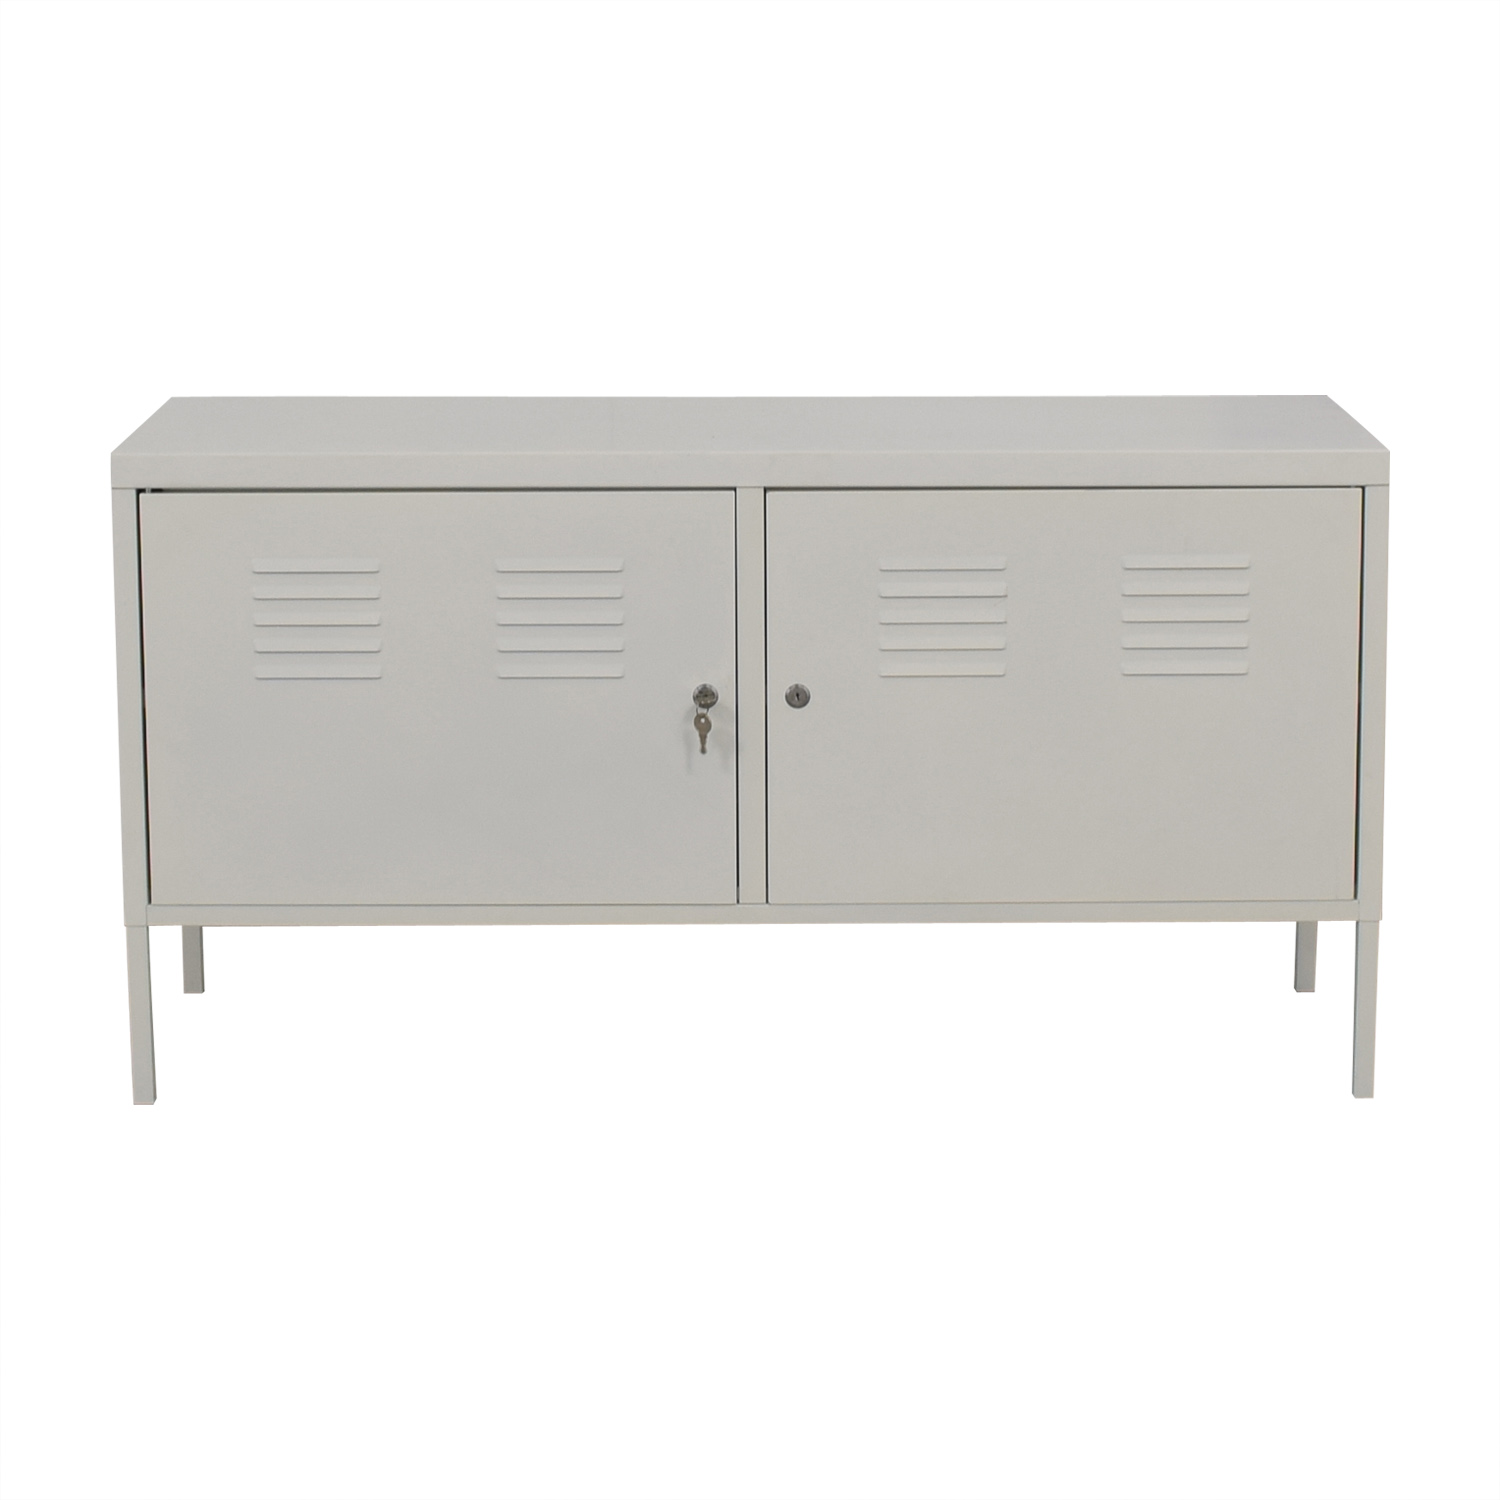 Ikea White Metal Locker Cabinet Storage